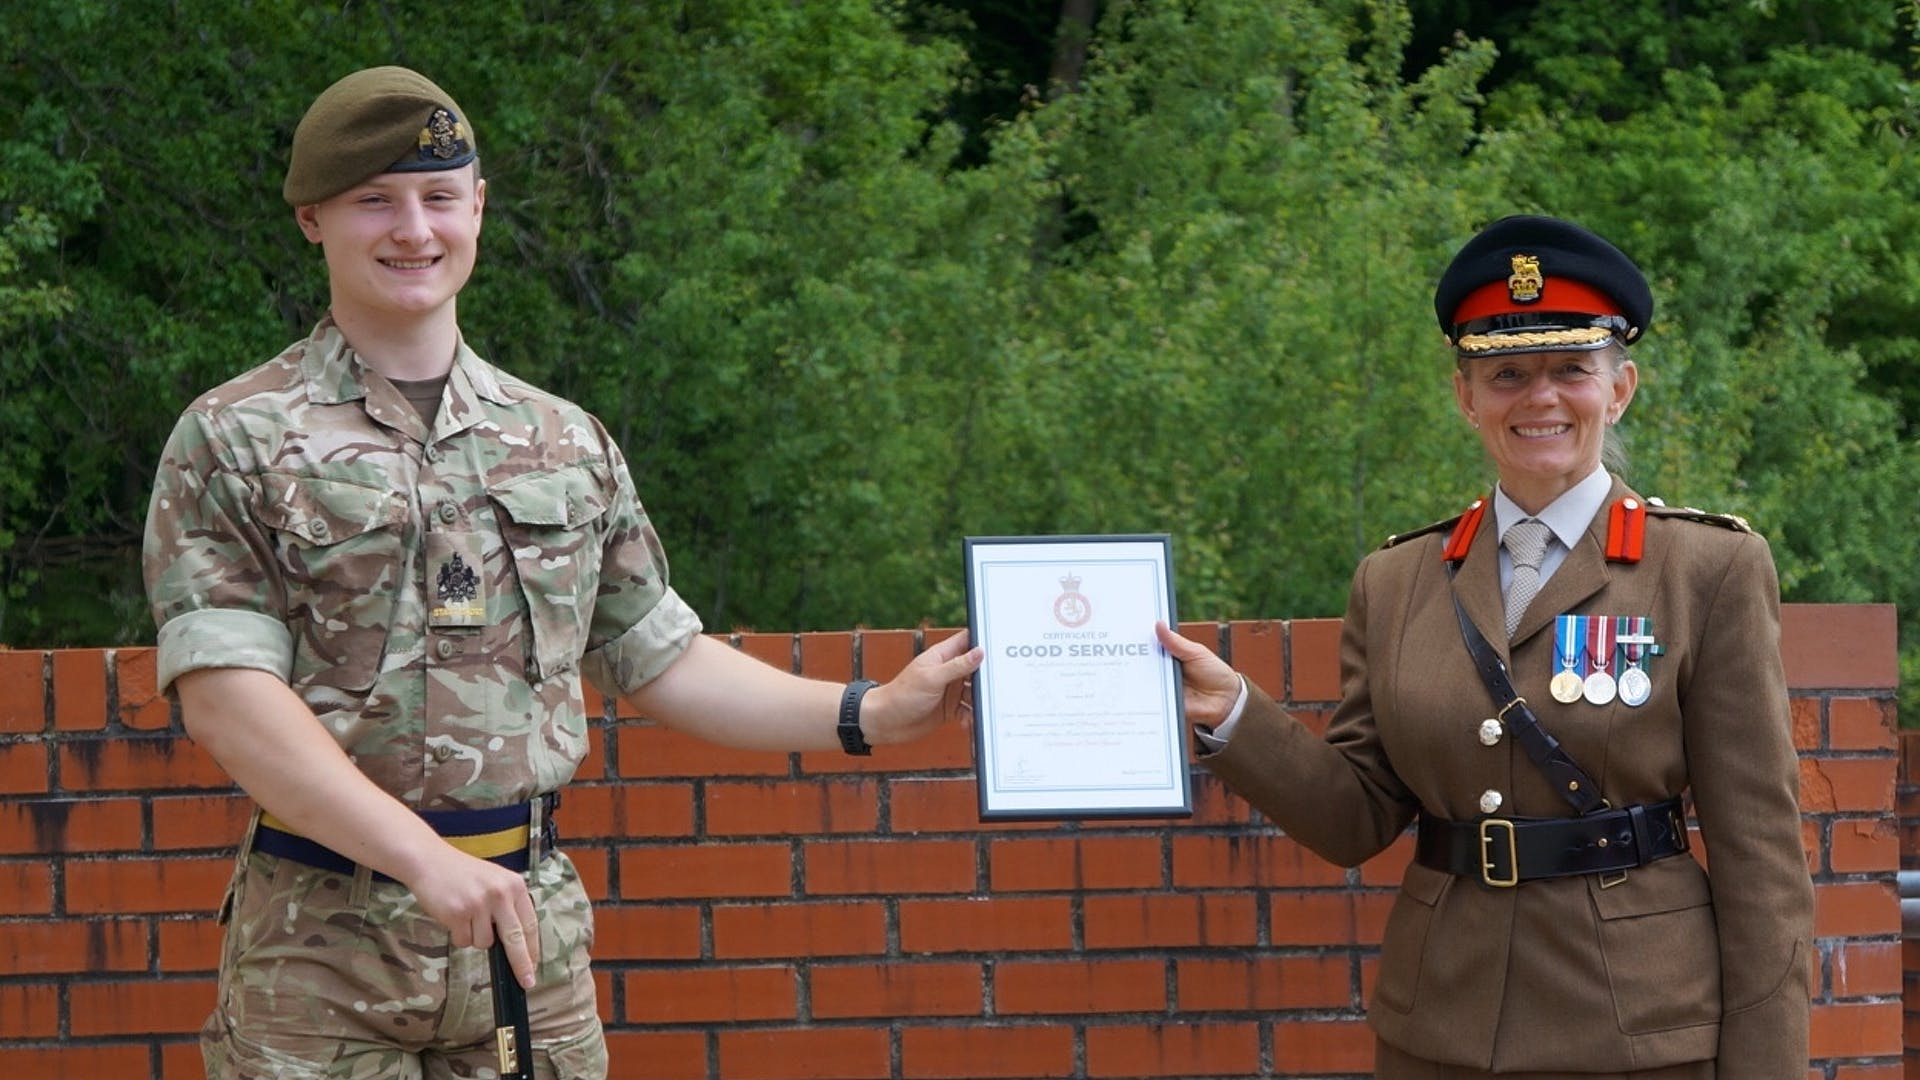 SC RSM Griffiths Certificate of Good Service